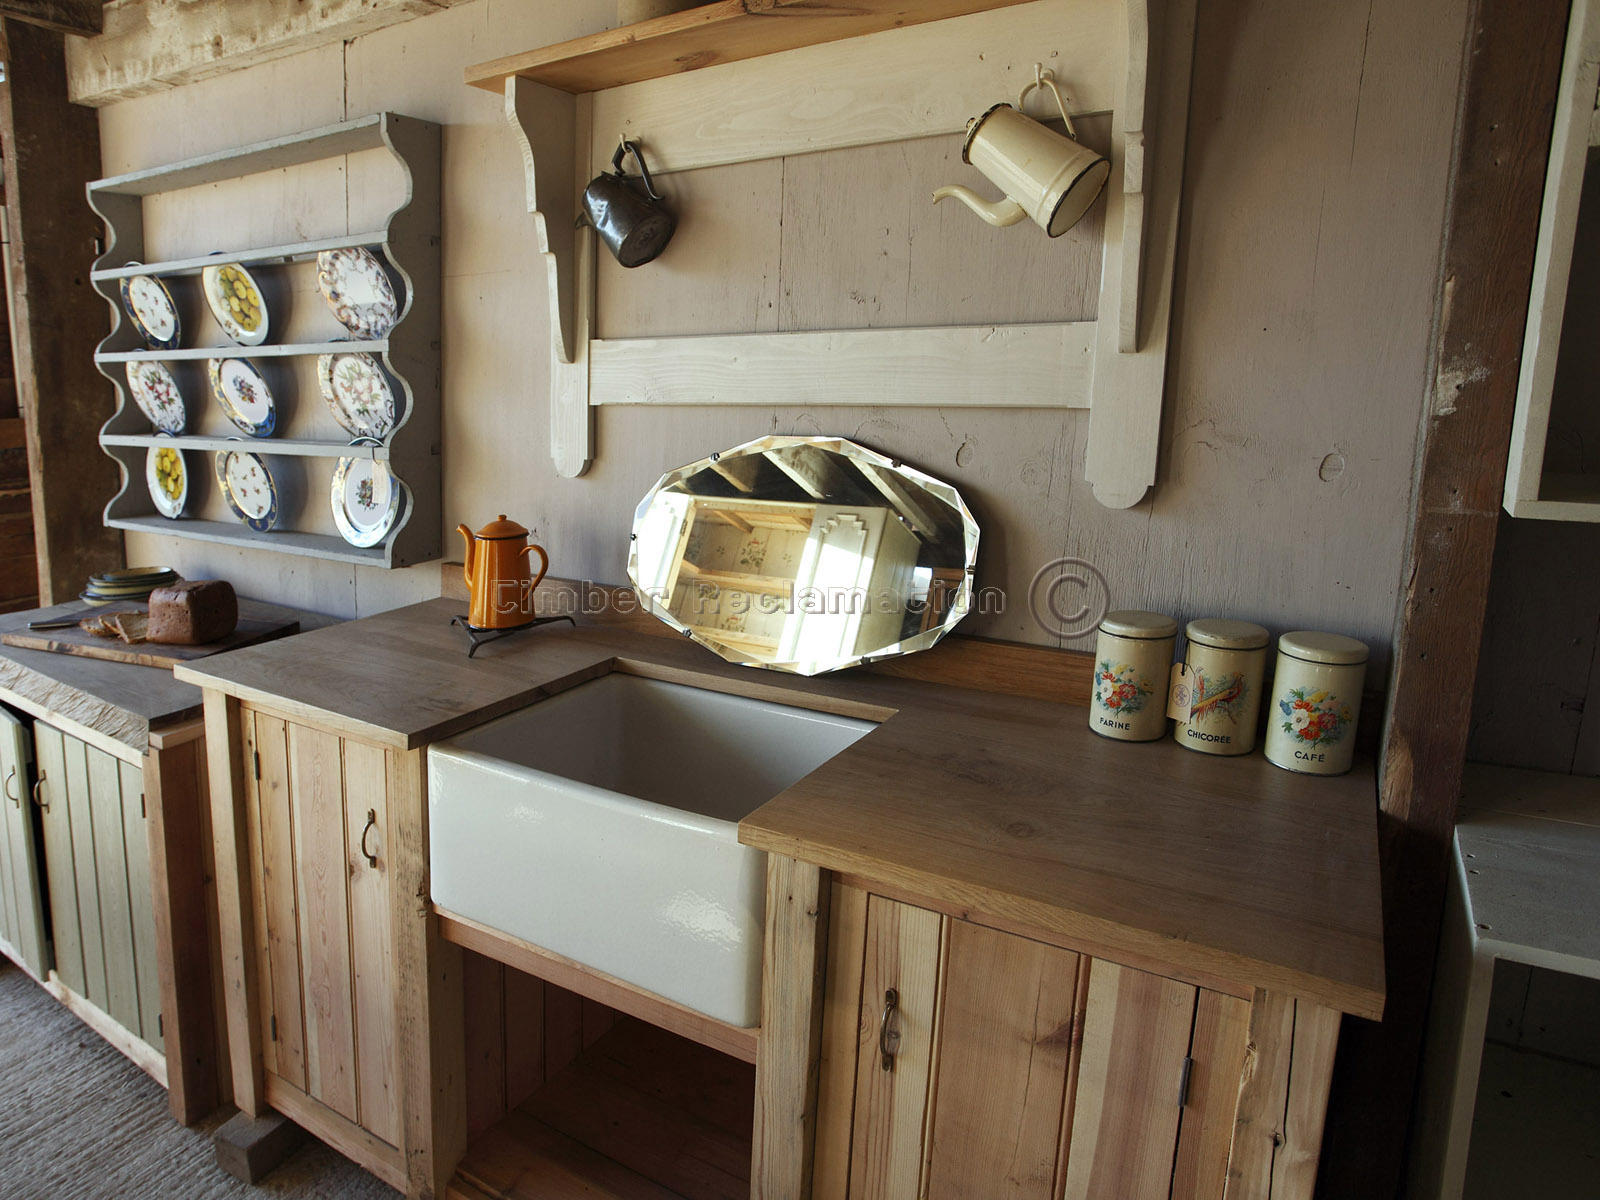 Bespoke Solid Wood Kitchen Units from Reclaimed Timber